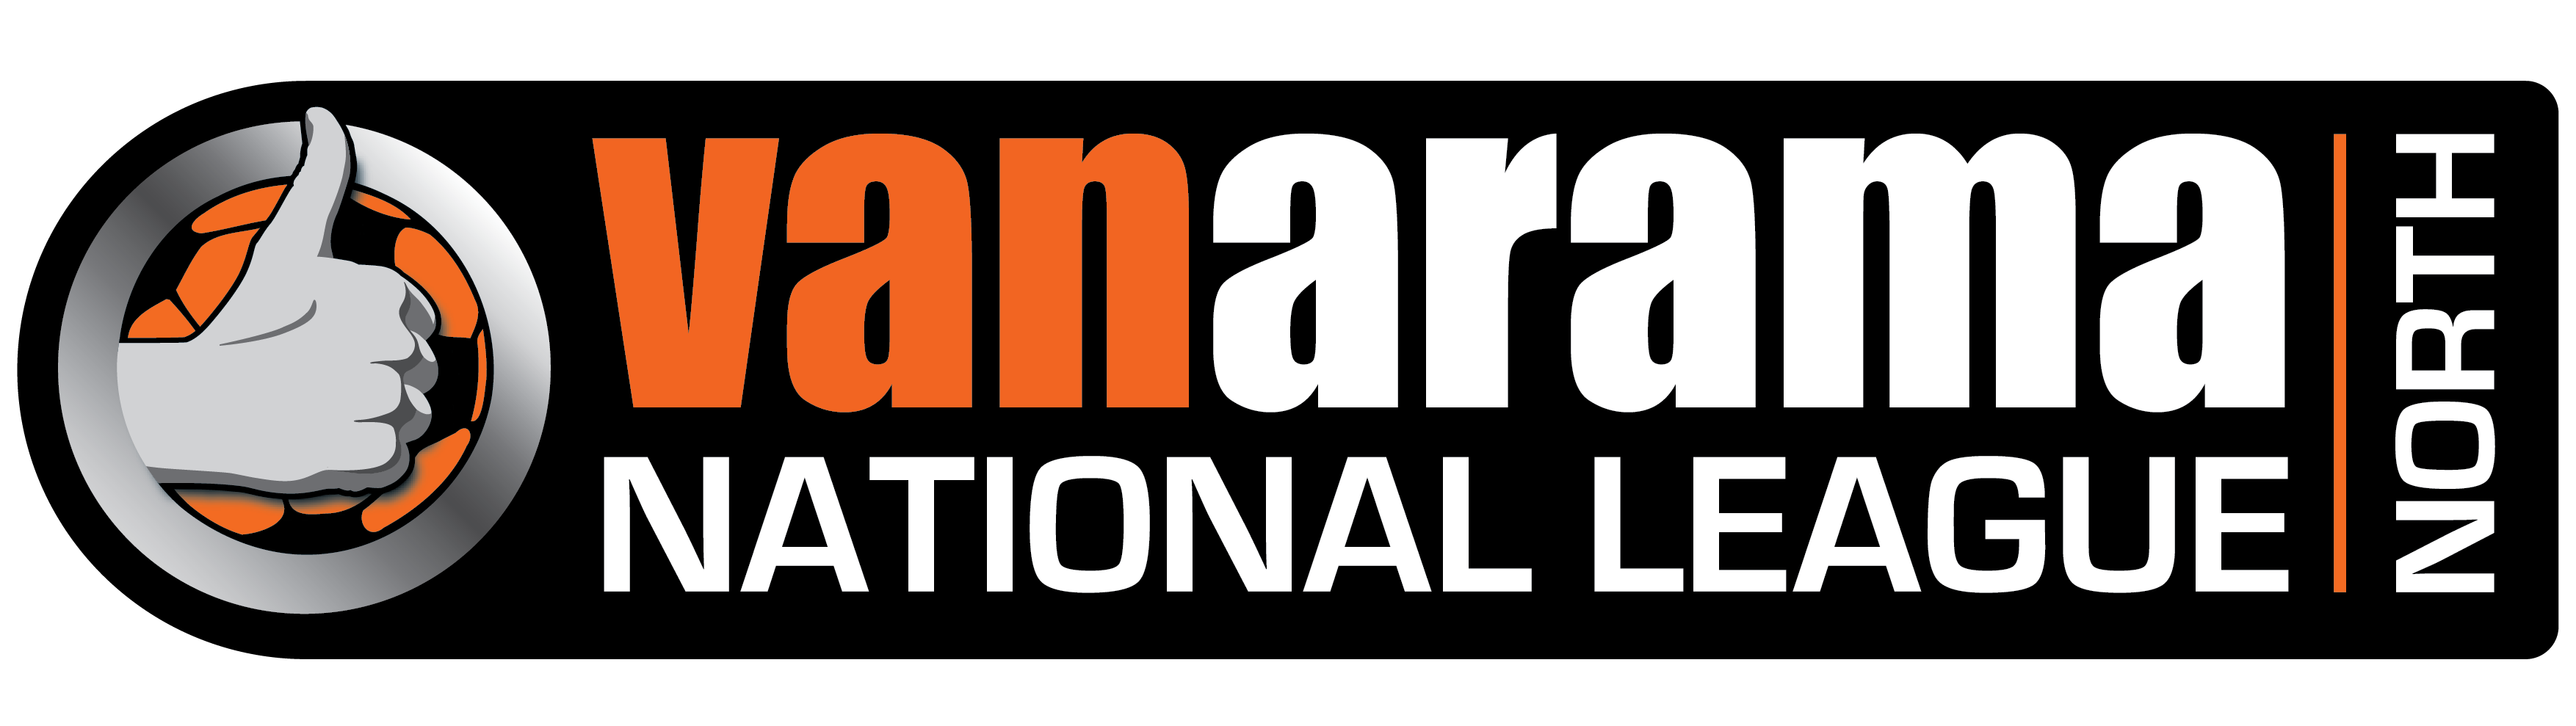 http://www.thelambs.co.uk/images/pic_Vanarama%20National%20League%20North%20-%20logo.png